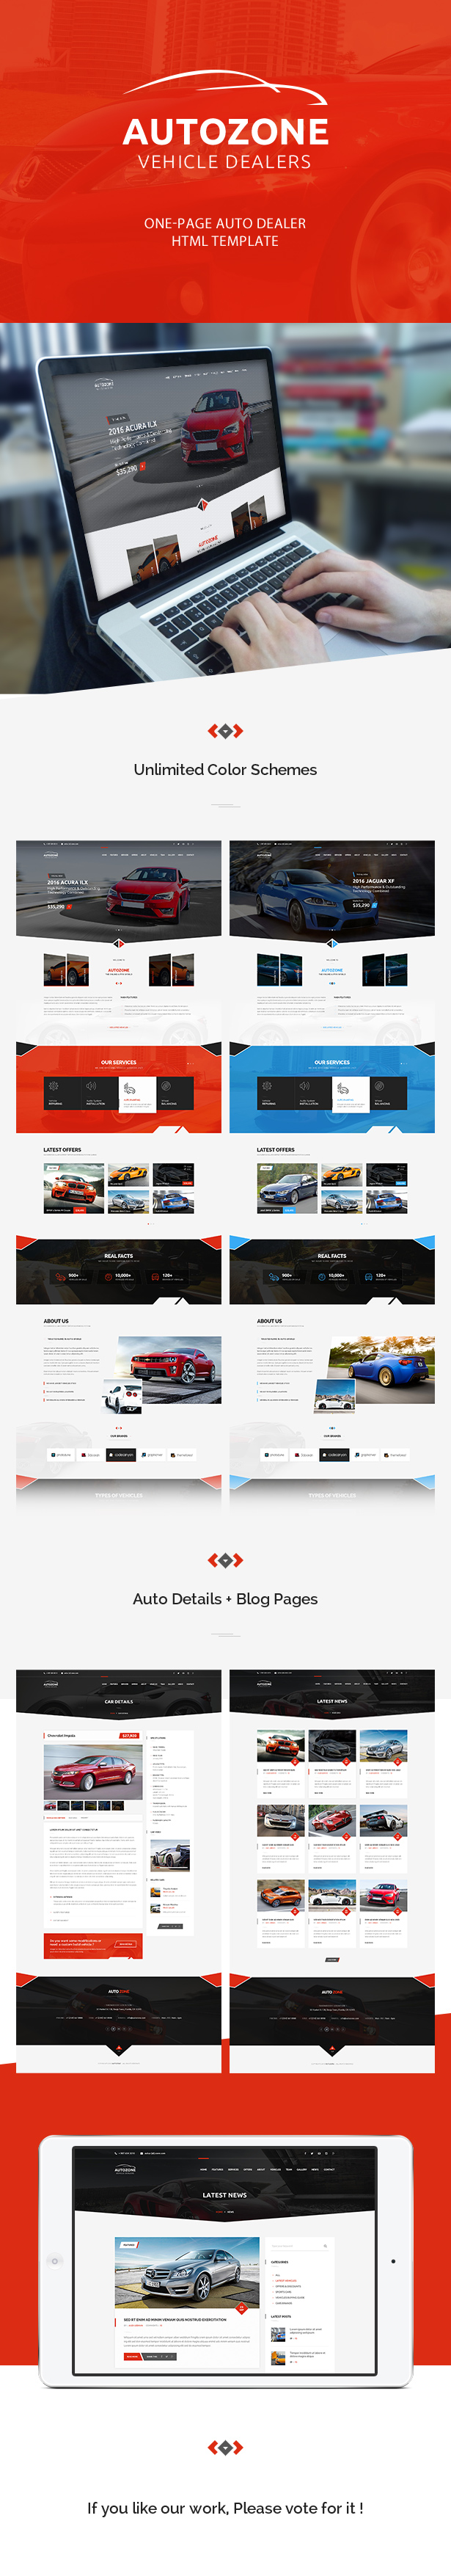 This html template also provide solutions to buy or sell cars online it features unlimited color variations vehicle details and blog pages